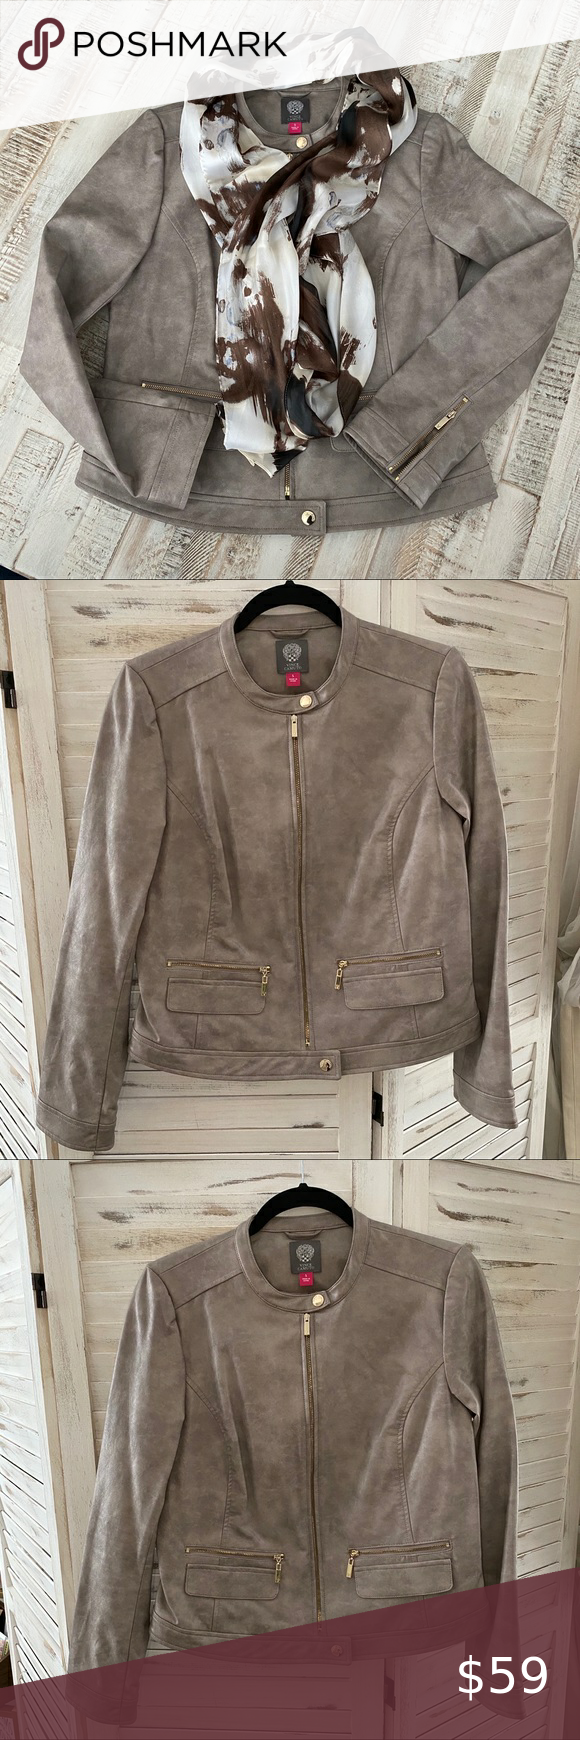 Vince Camuto Moto Jacket Small In 2020 Clothes Design Moto Jacket Vince Camuto [ 1740 x 580 Pixel ]